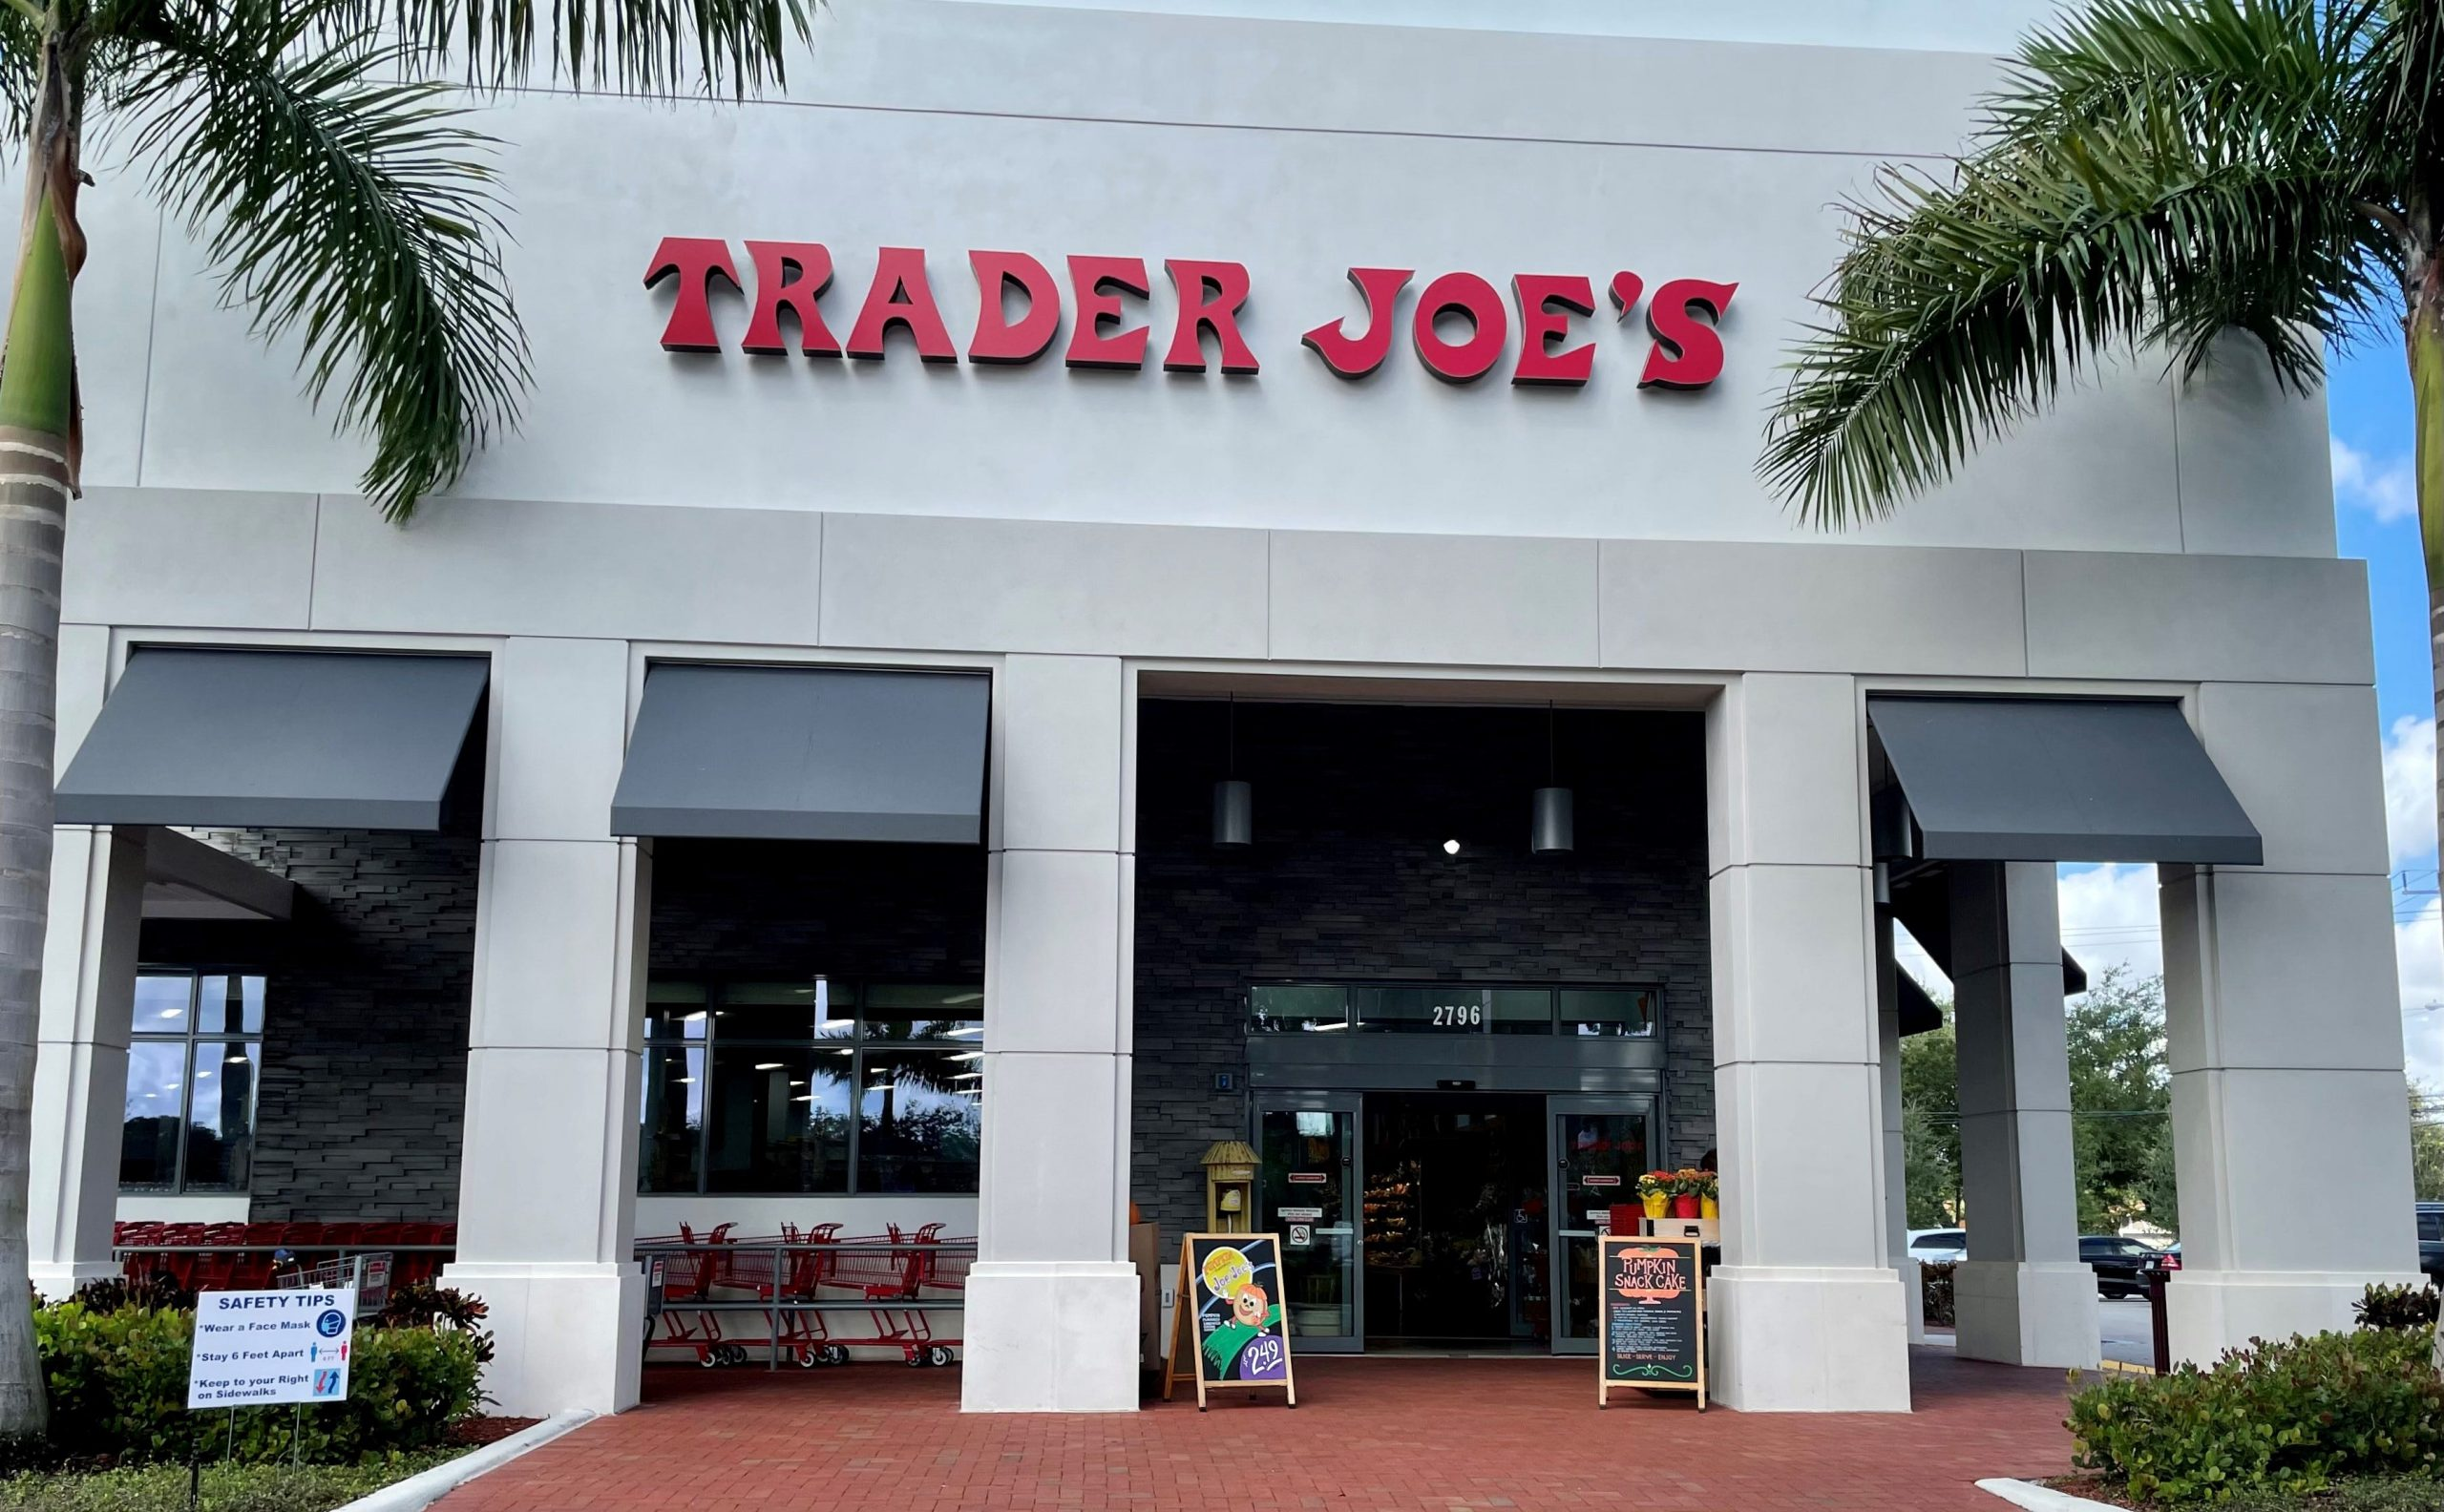 Save money at Trader Joe's? Here's how to get more 'Two Buck Chuck' wine and pumpkin everything